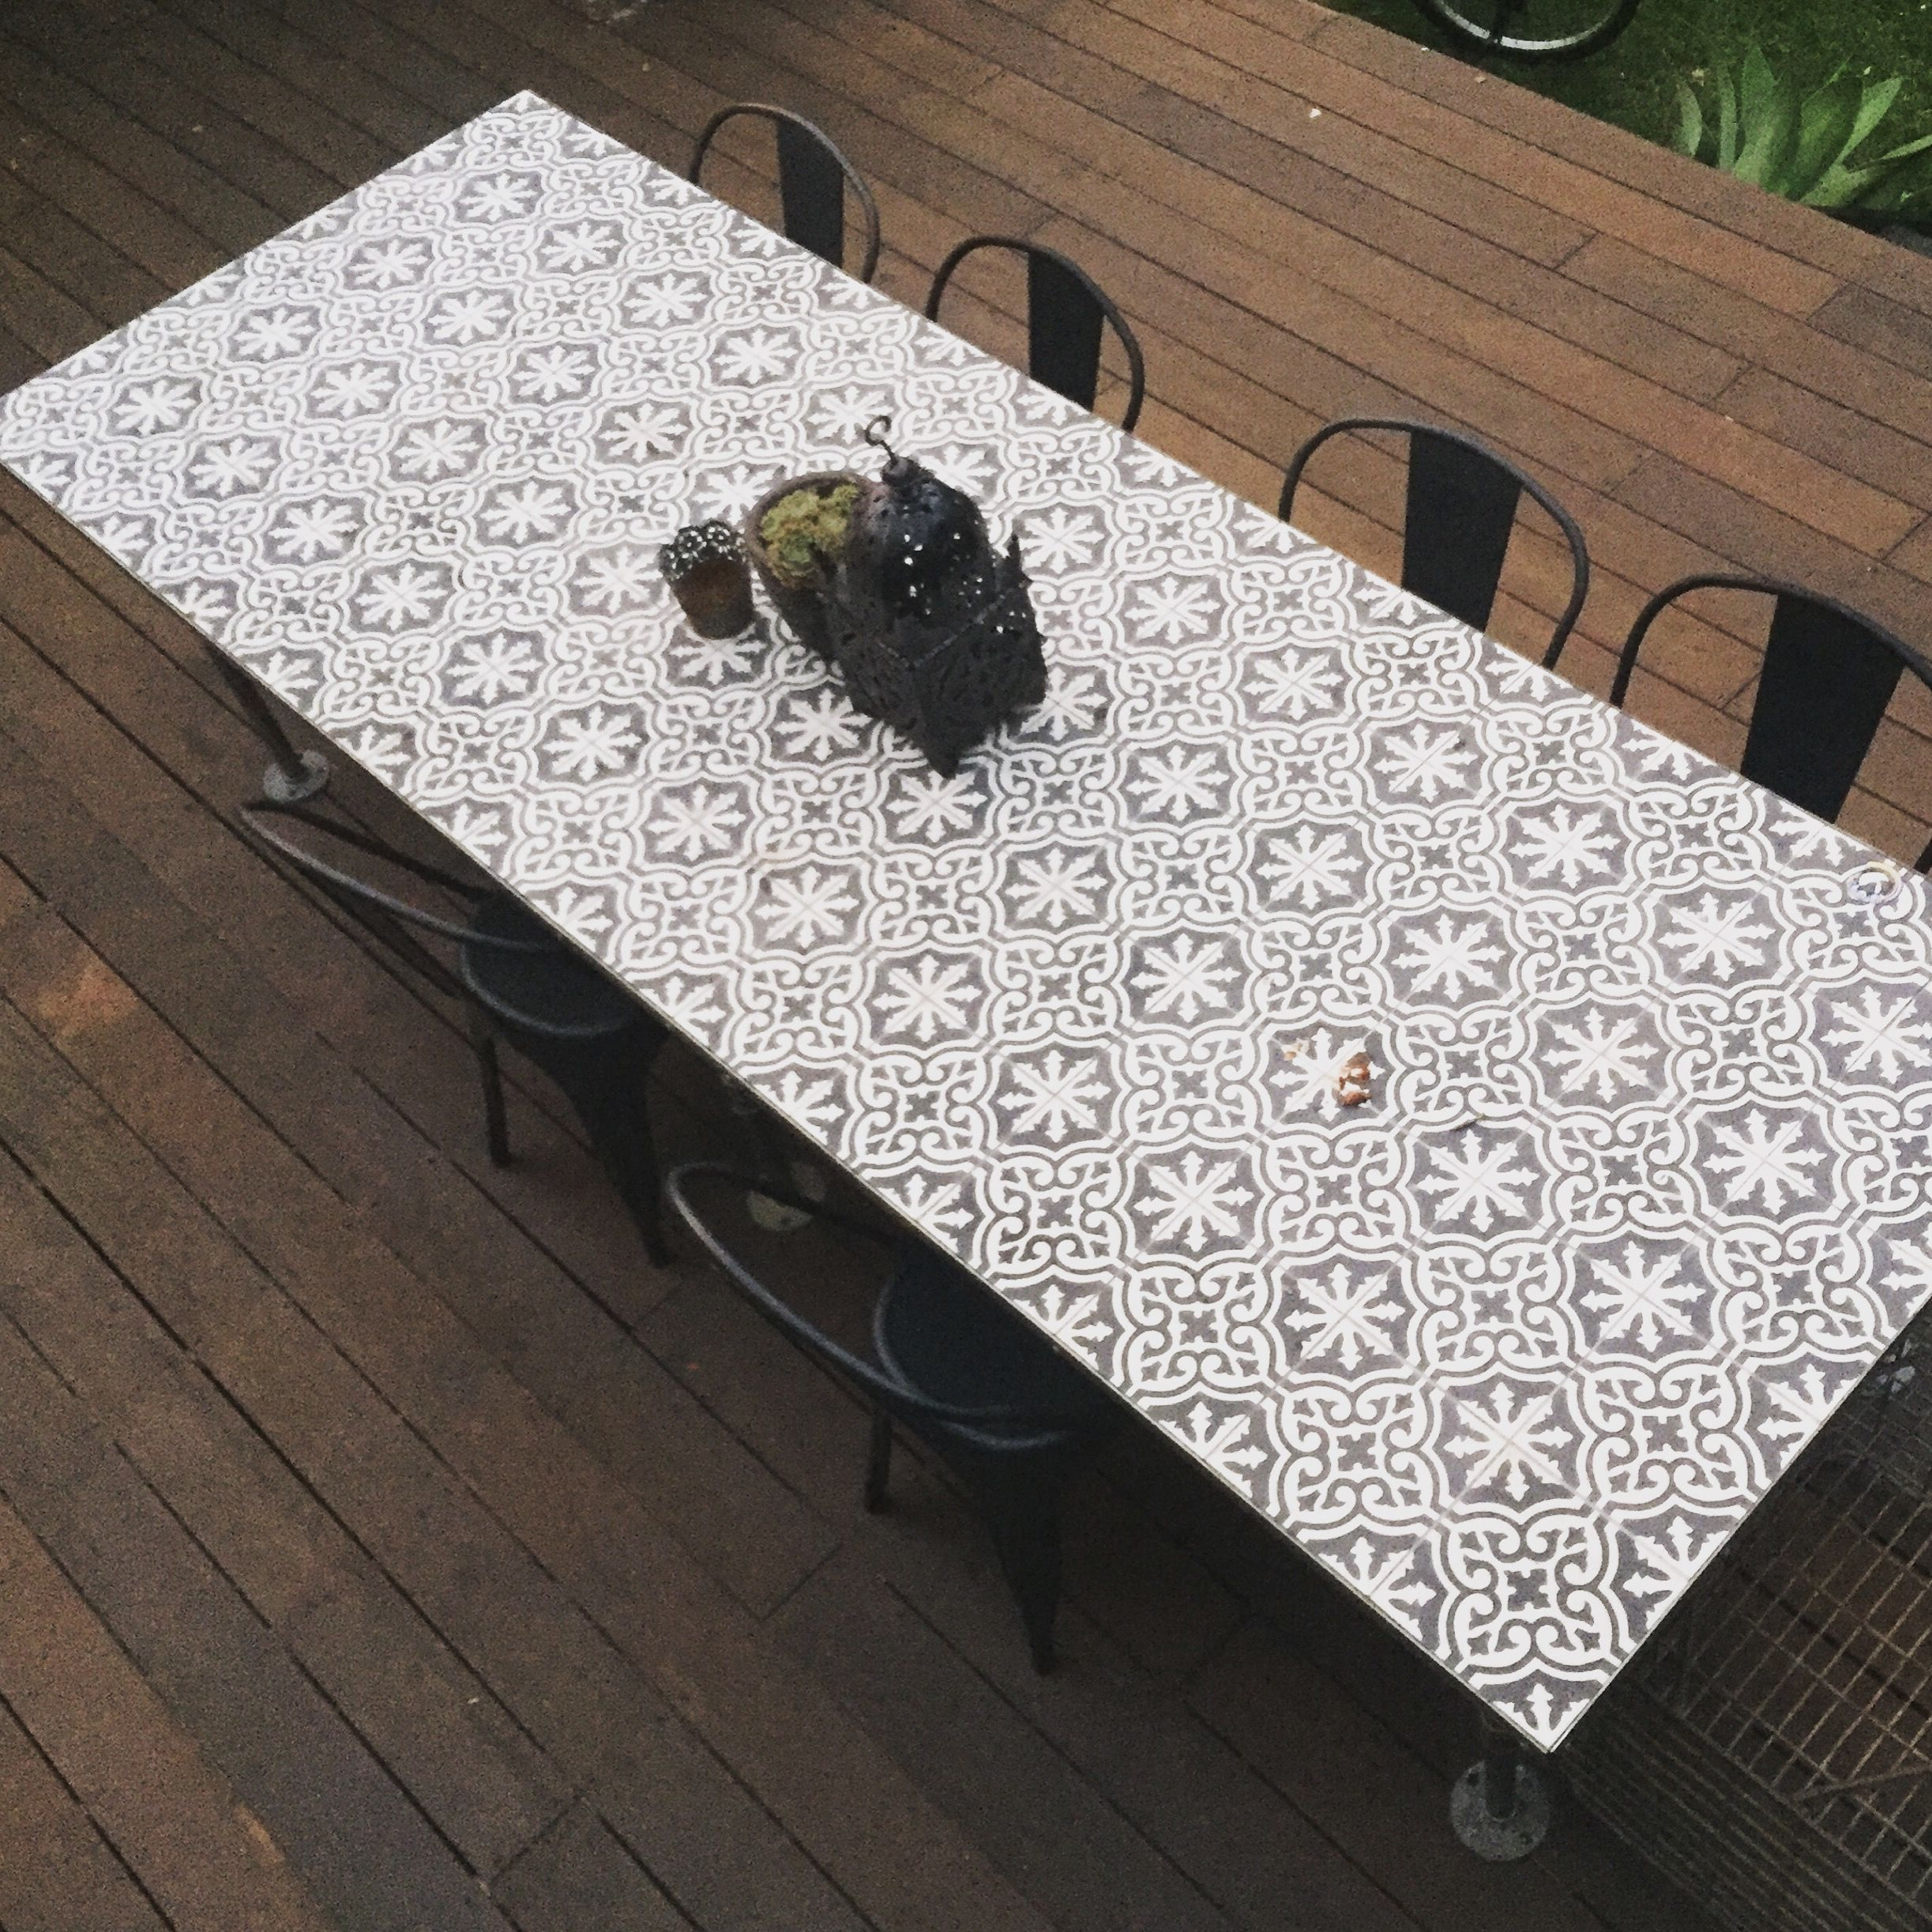 Custom Moroccan Tiled Table Top With Plumbing Piped Legs